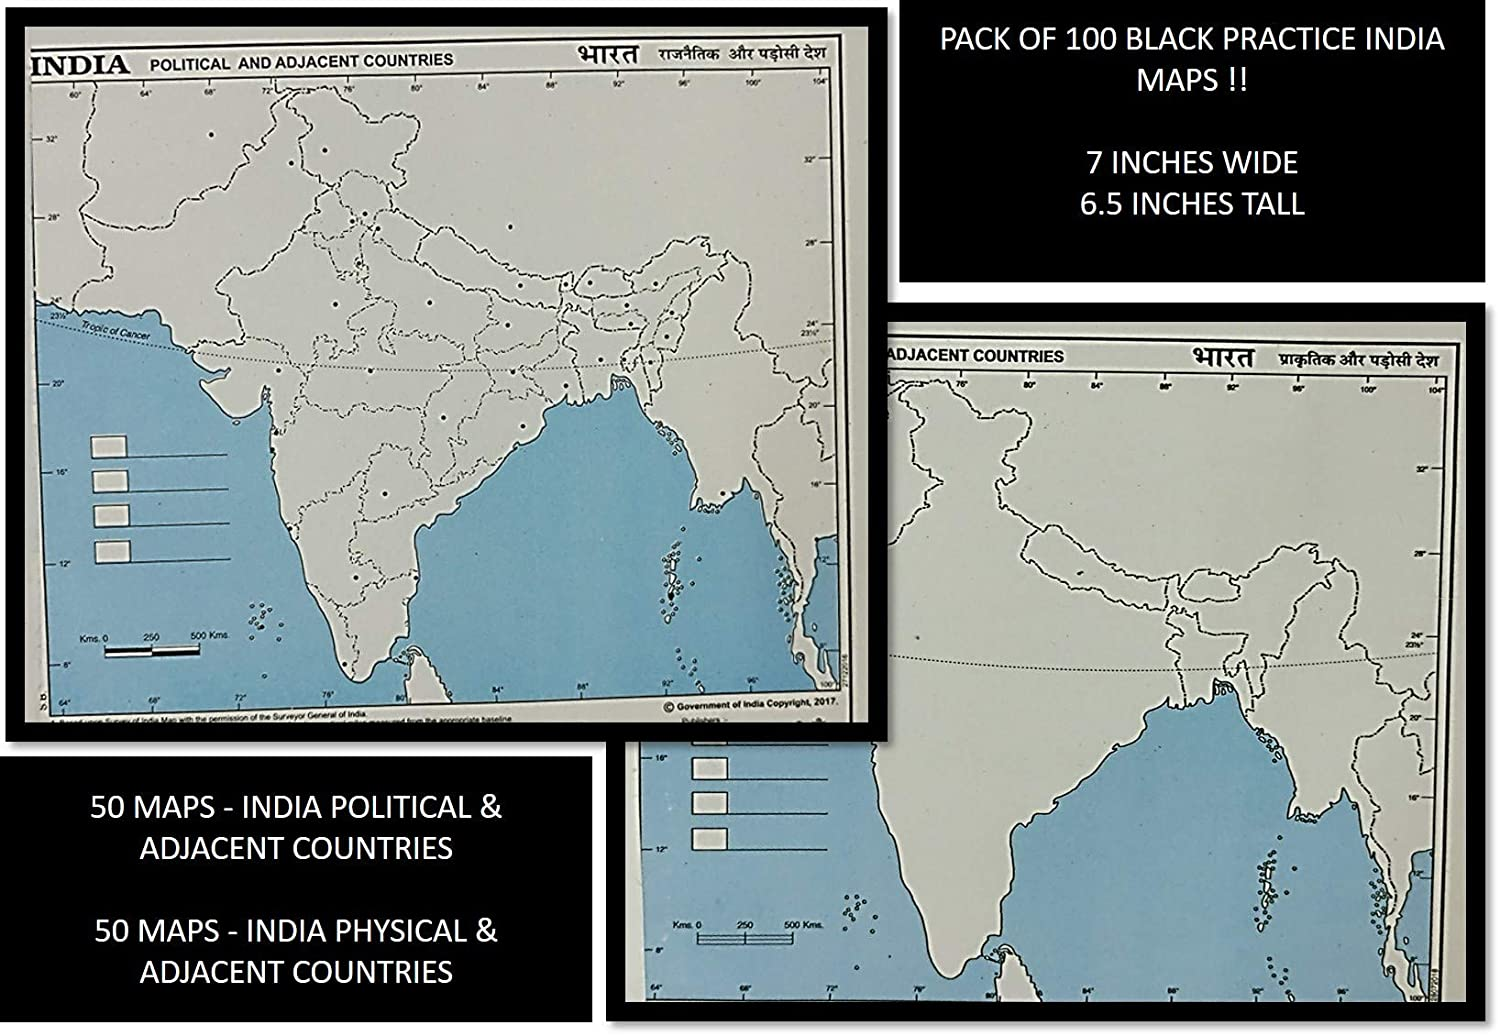 blank india political map for practice Set Of 100 Practice Educational Blank Outline Maps Of India blank india political map for practice